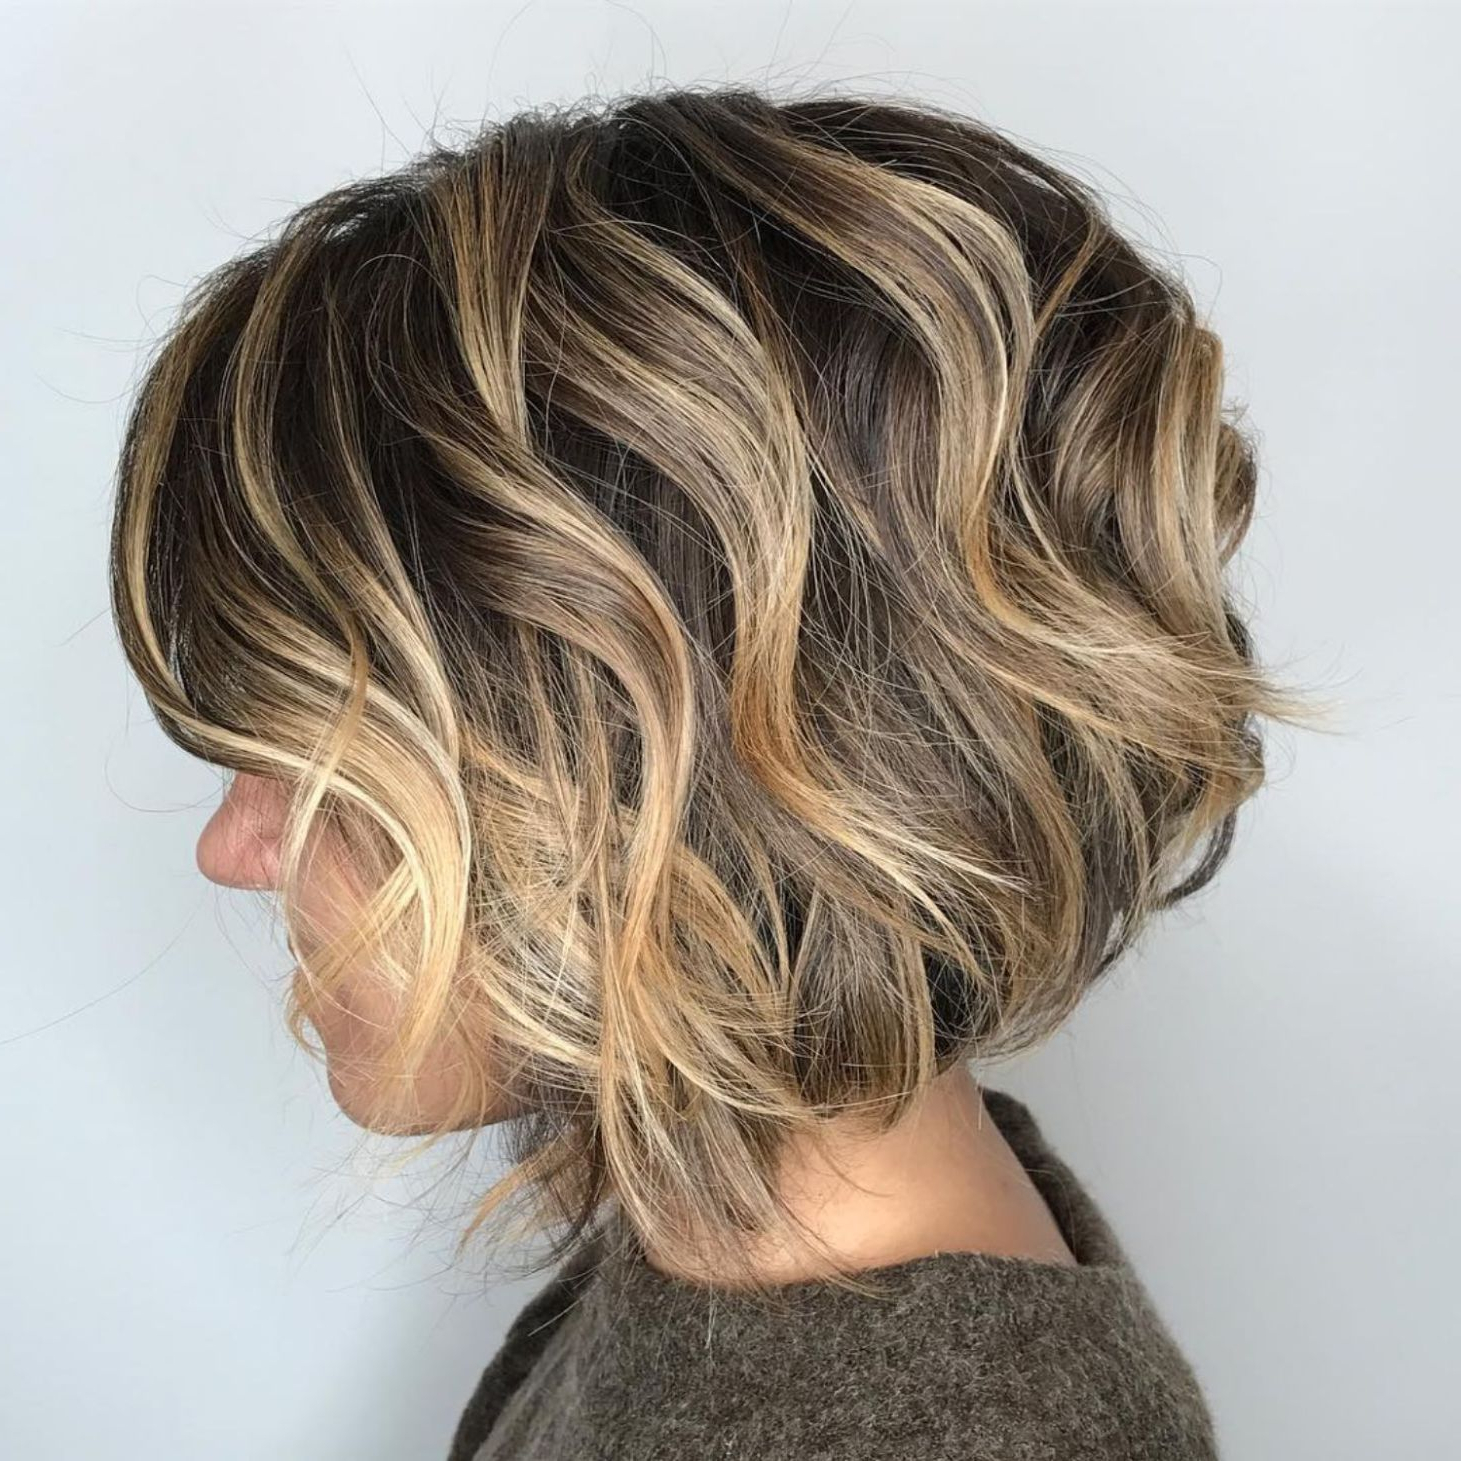 60 Layered Bob Styles: Modern Haircuts With Layers For Any Occasion Inside Hazel Blonde Razored Bob Hairstyles (View 10 of 20)